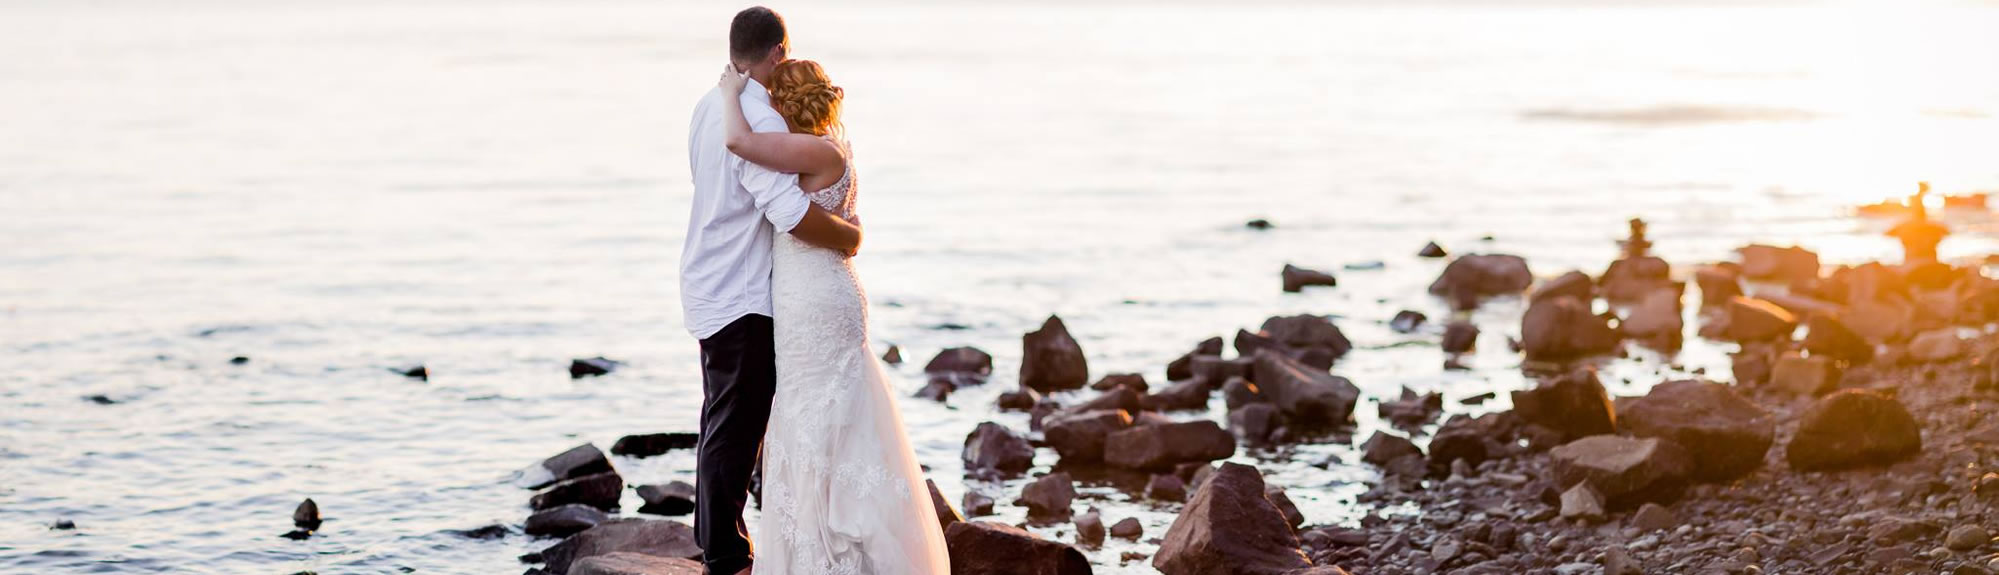 Weddings and Elopements